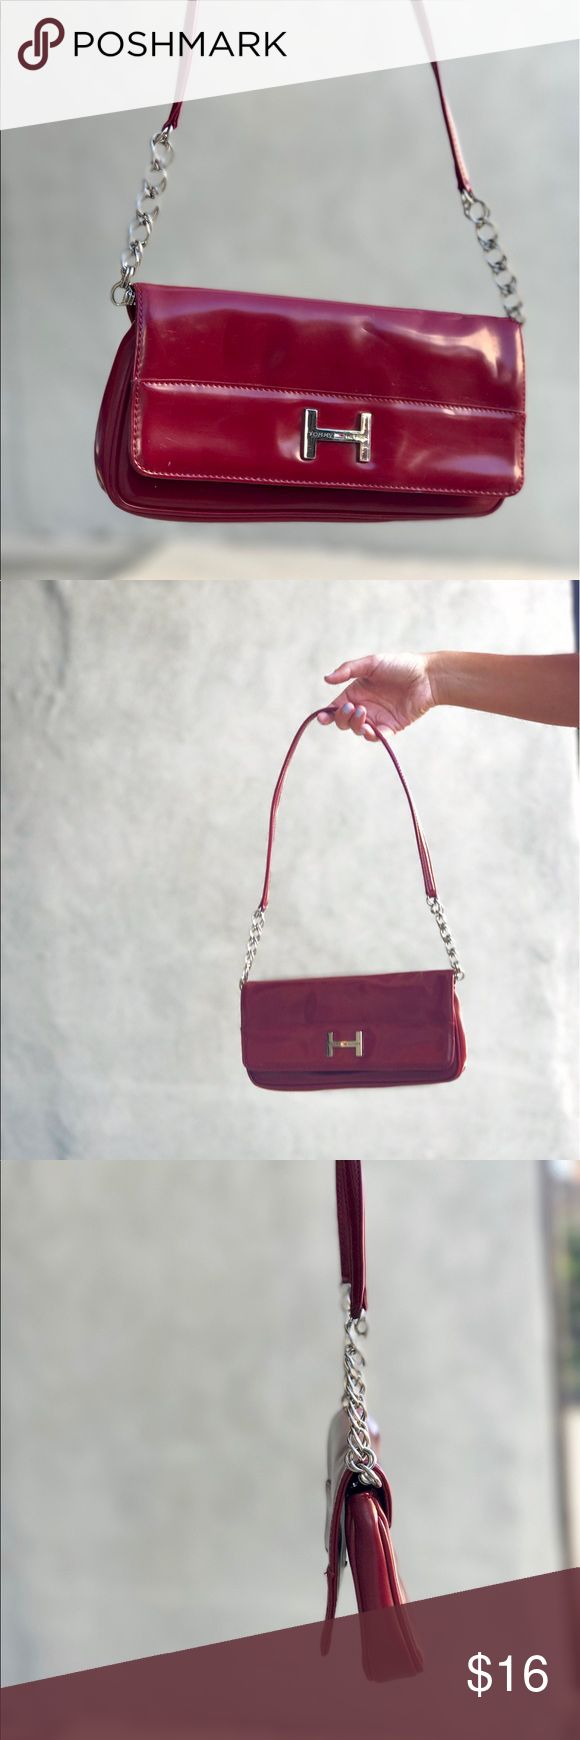 """Tommy Hilfiger Y2K Clutch/ mini bag I was trying to write a description while watching a movie, and realized the movie its harder than I thought and I am definitely not good at multitasking as I have been convinced for the past 27 years. Tommy Hilfiger red Mini Bag / purse / clutch / pochette. Clip on button, can be worn on the shoulder or as a maxi wallet in your hands. Minor scuffs and smudges. Also inside! 🙌🏼. Y2K. Measurements: 9.5"""" x 4.75"""". #tommy #hilfiger #tommyhilfiger #th #depop…"""